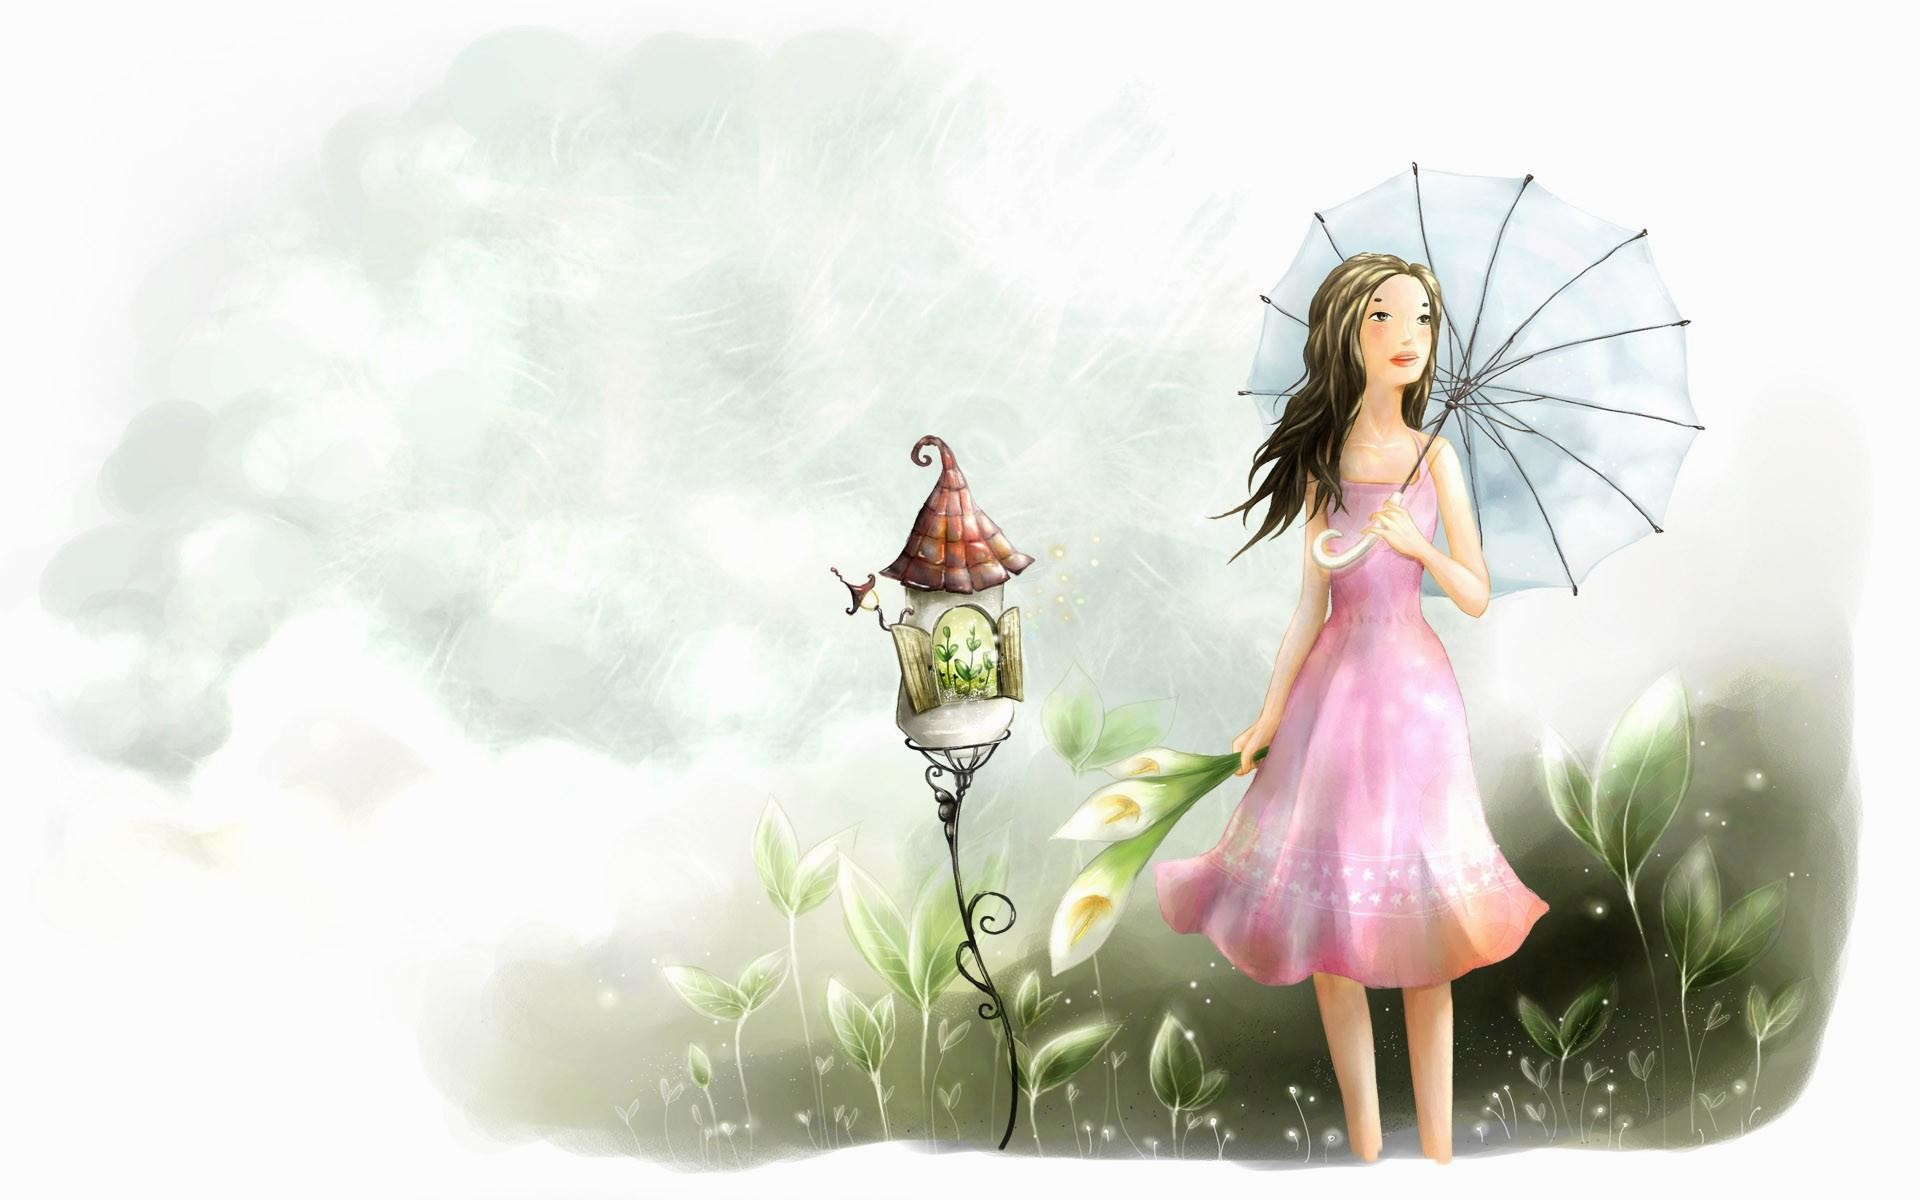 Girly Girl Wallpapers Backgrounds (56+ images)